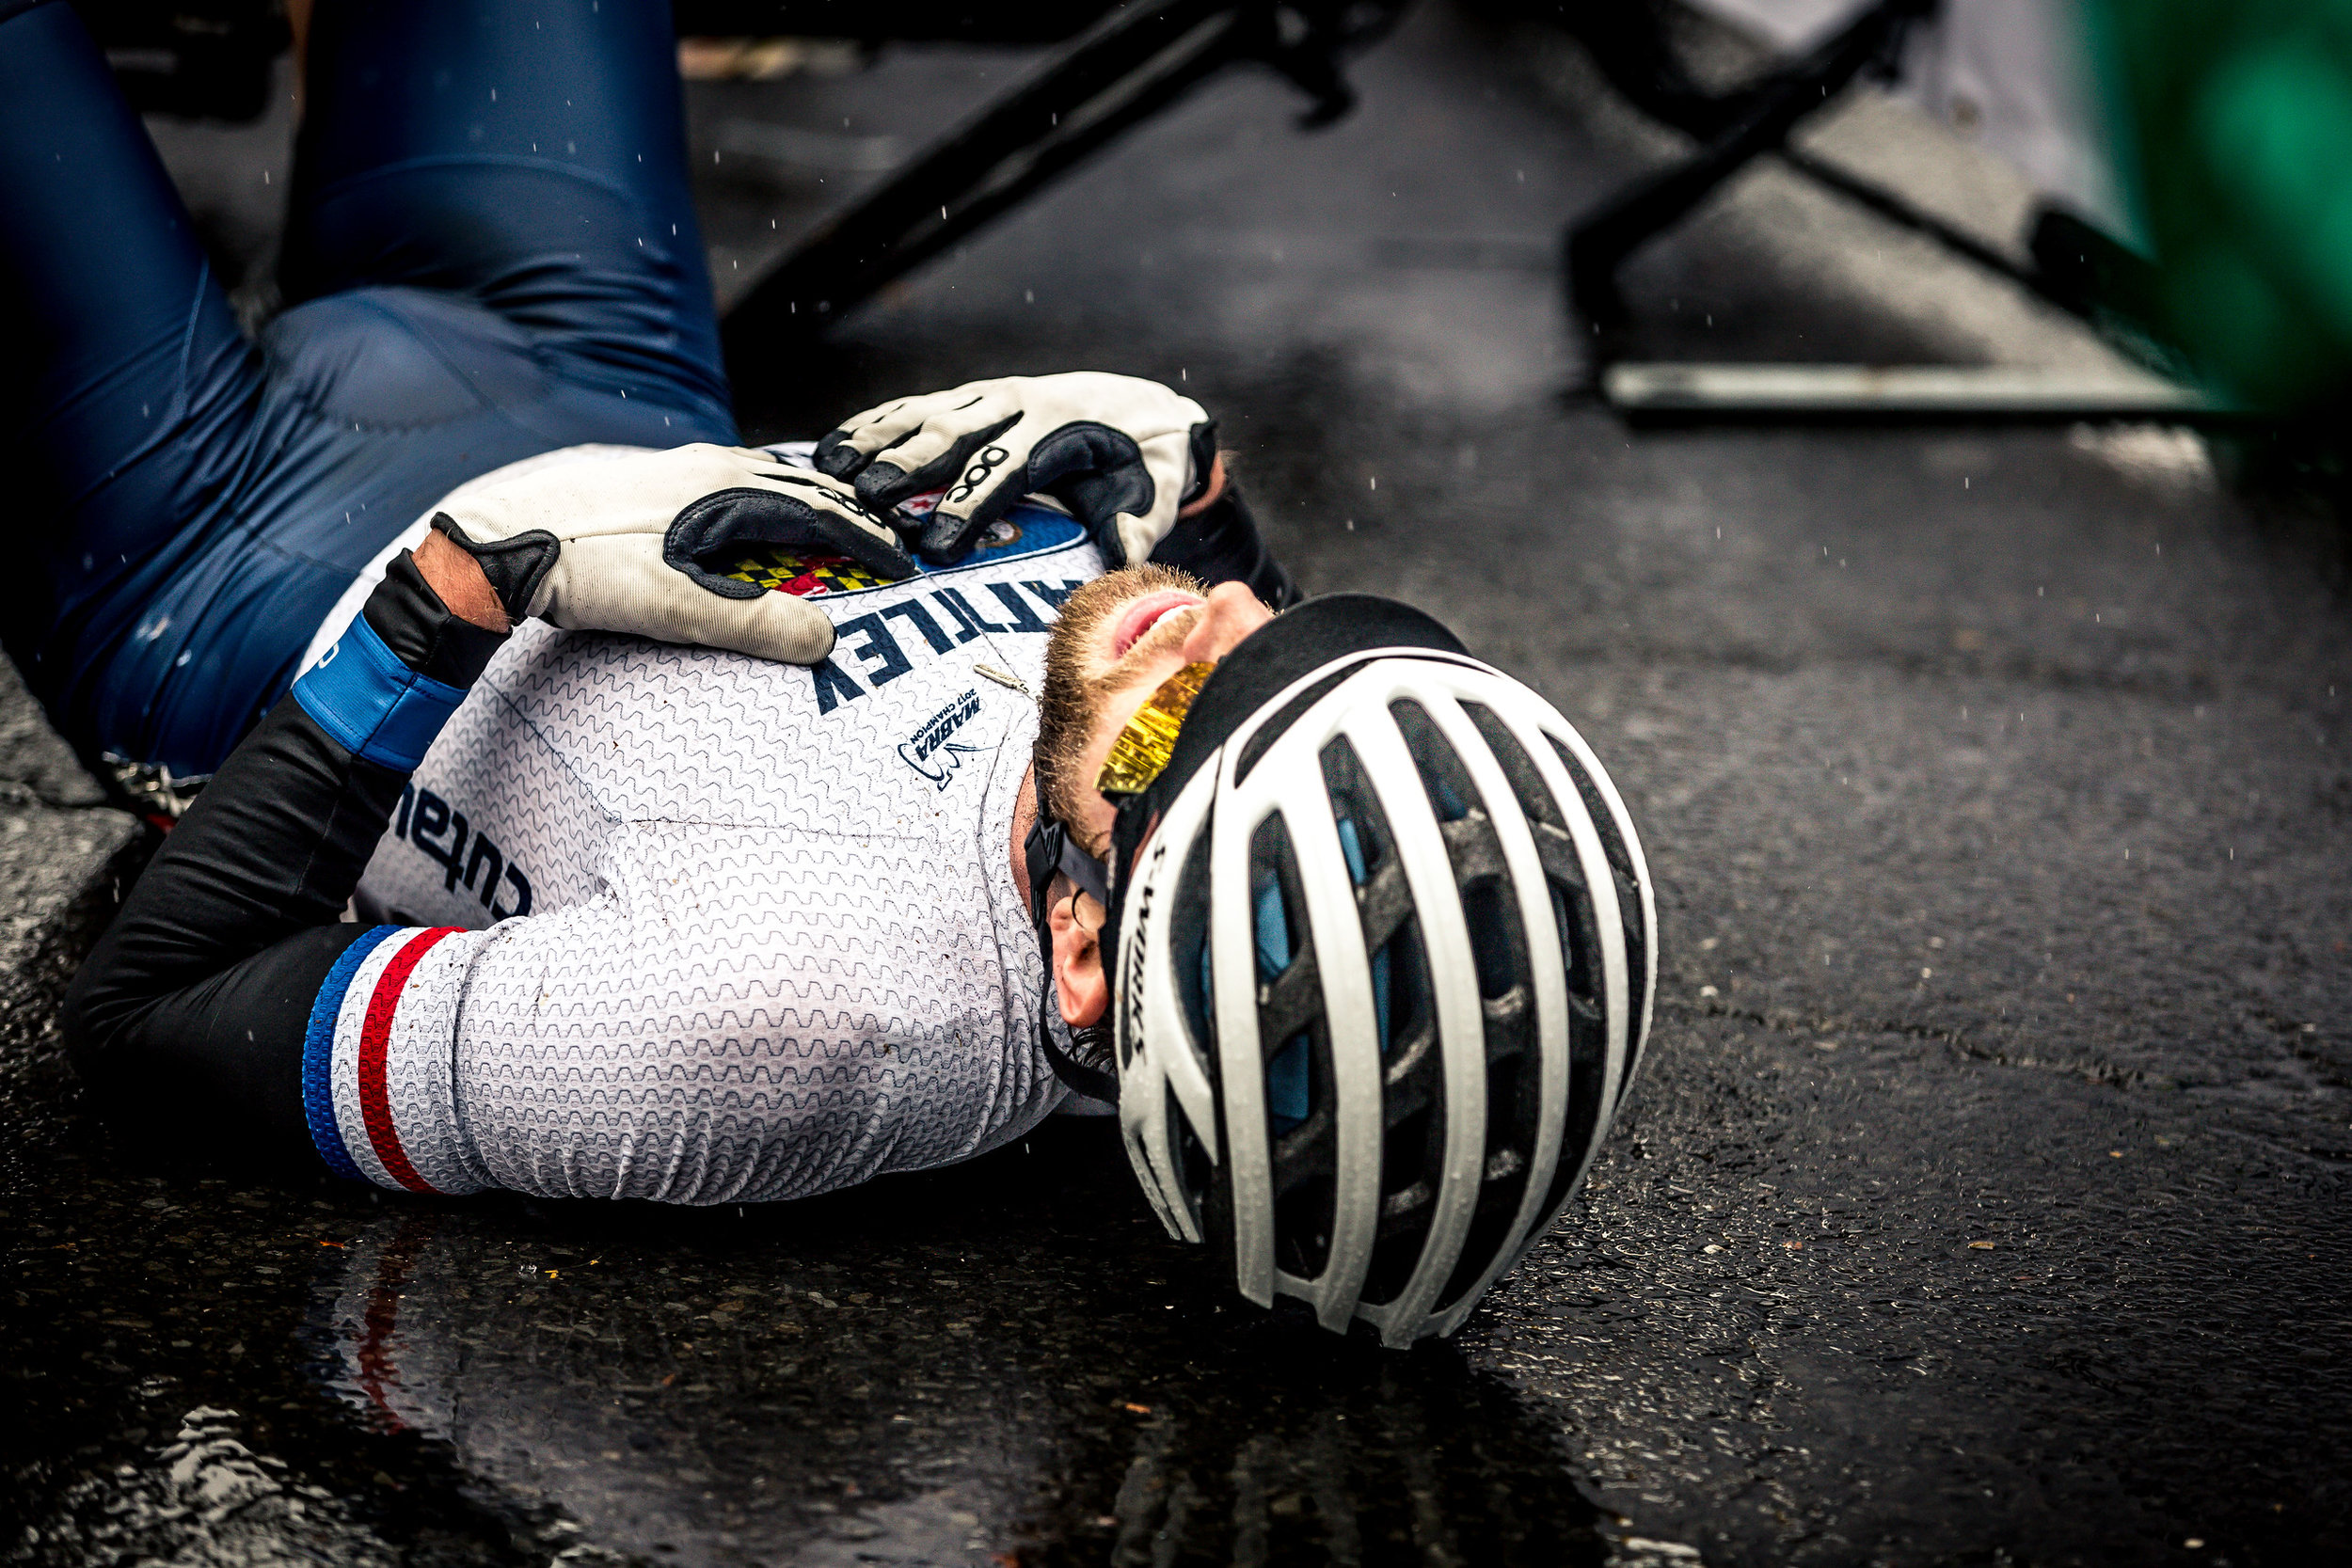 McLoone laid down on the road after his impressive effort to bridge the gap.